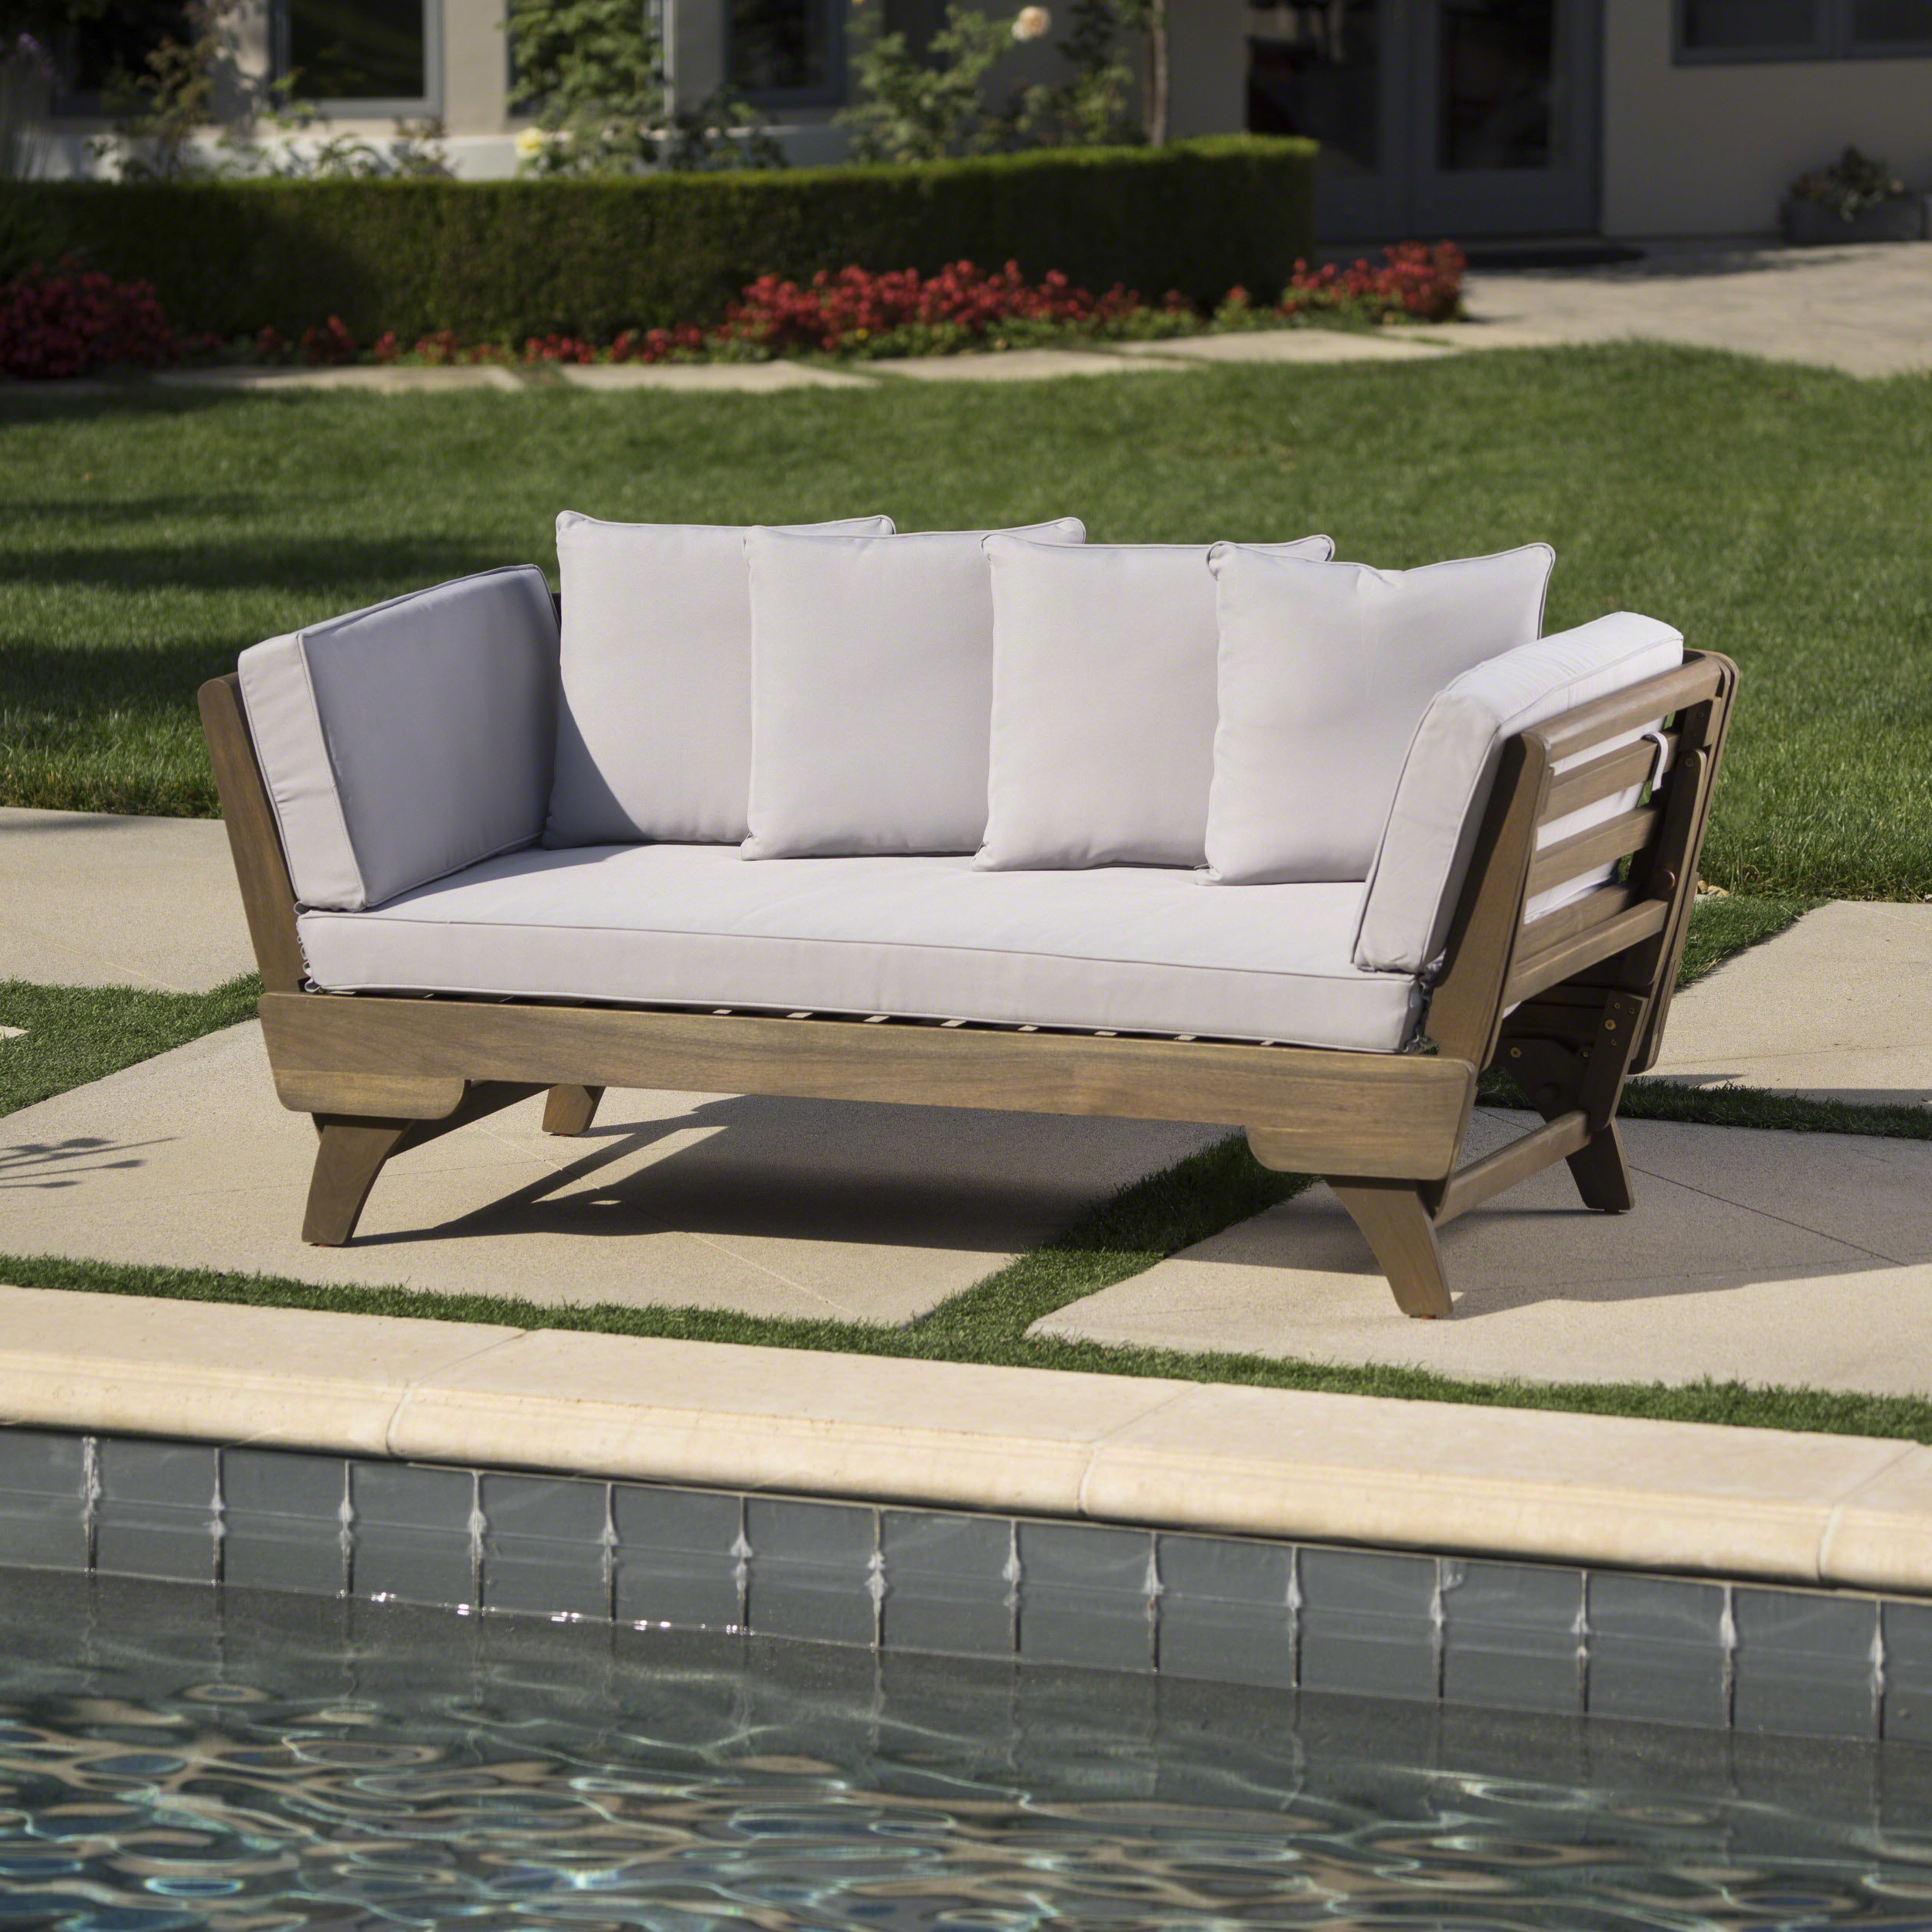 Latest Modern & Contemporary Patio Daybeds You'll Love In 2019 Pertaining To Clary Teak Lounge Patio Daybeds With Cushion (View 18 of 20)